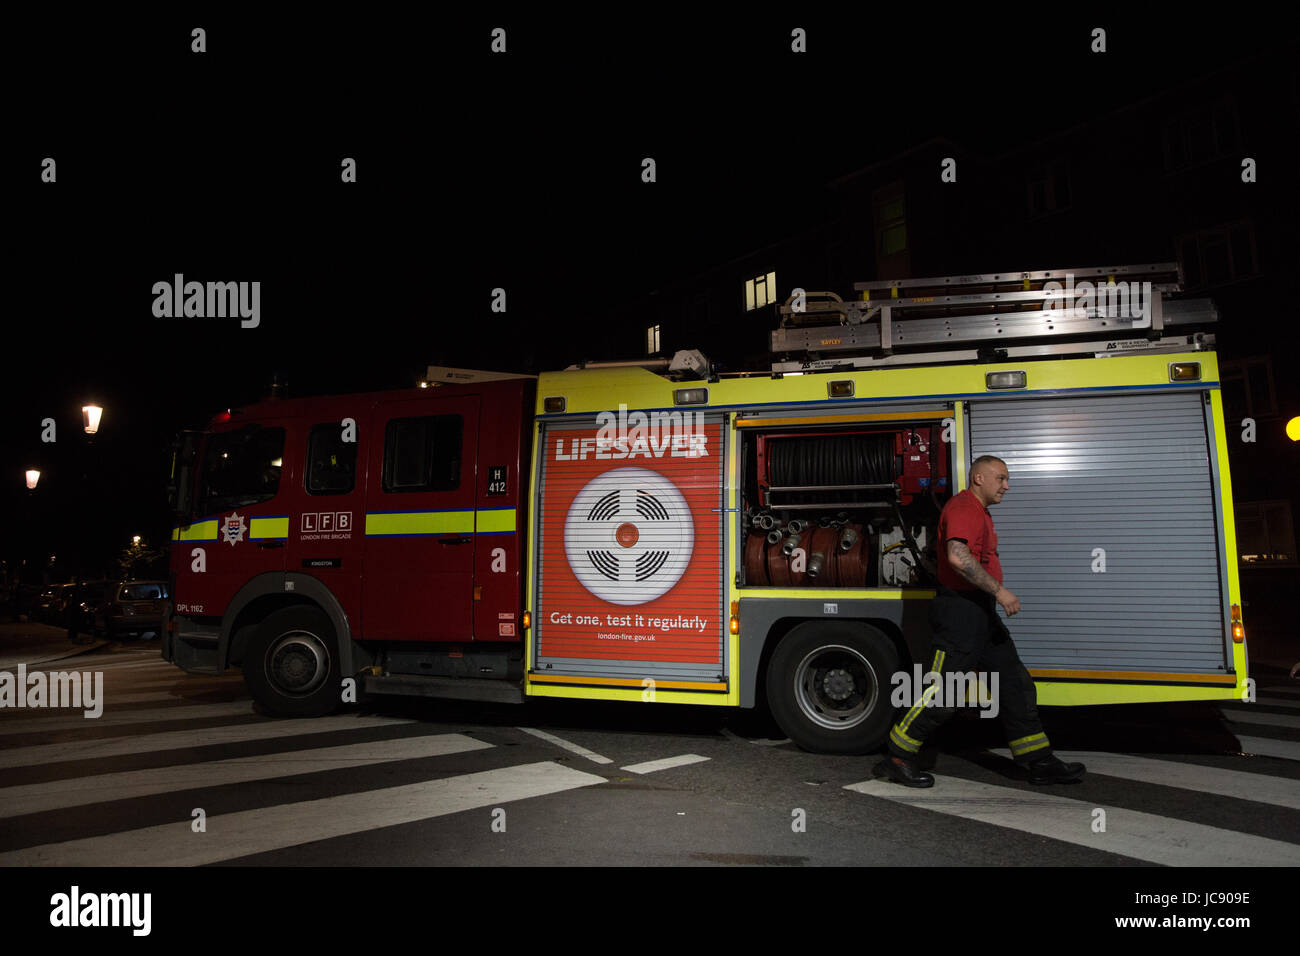 London, UK. 15th June, 2017. Fire appliances being prepared at around 2.30am. Credit: Mark Kerrison/Alamy Live News - Stock Image